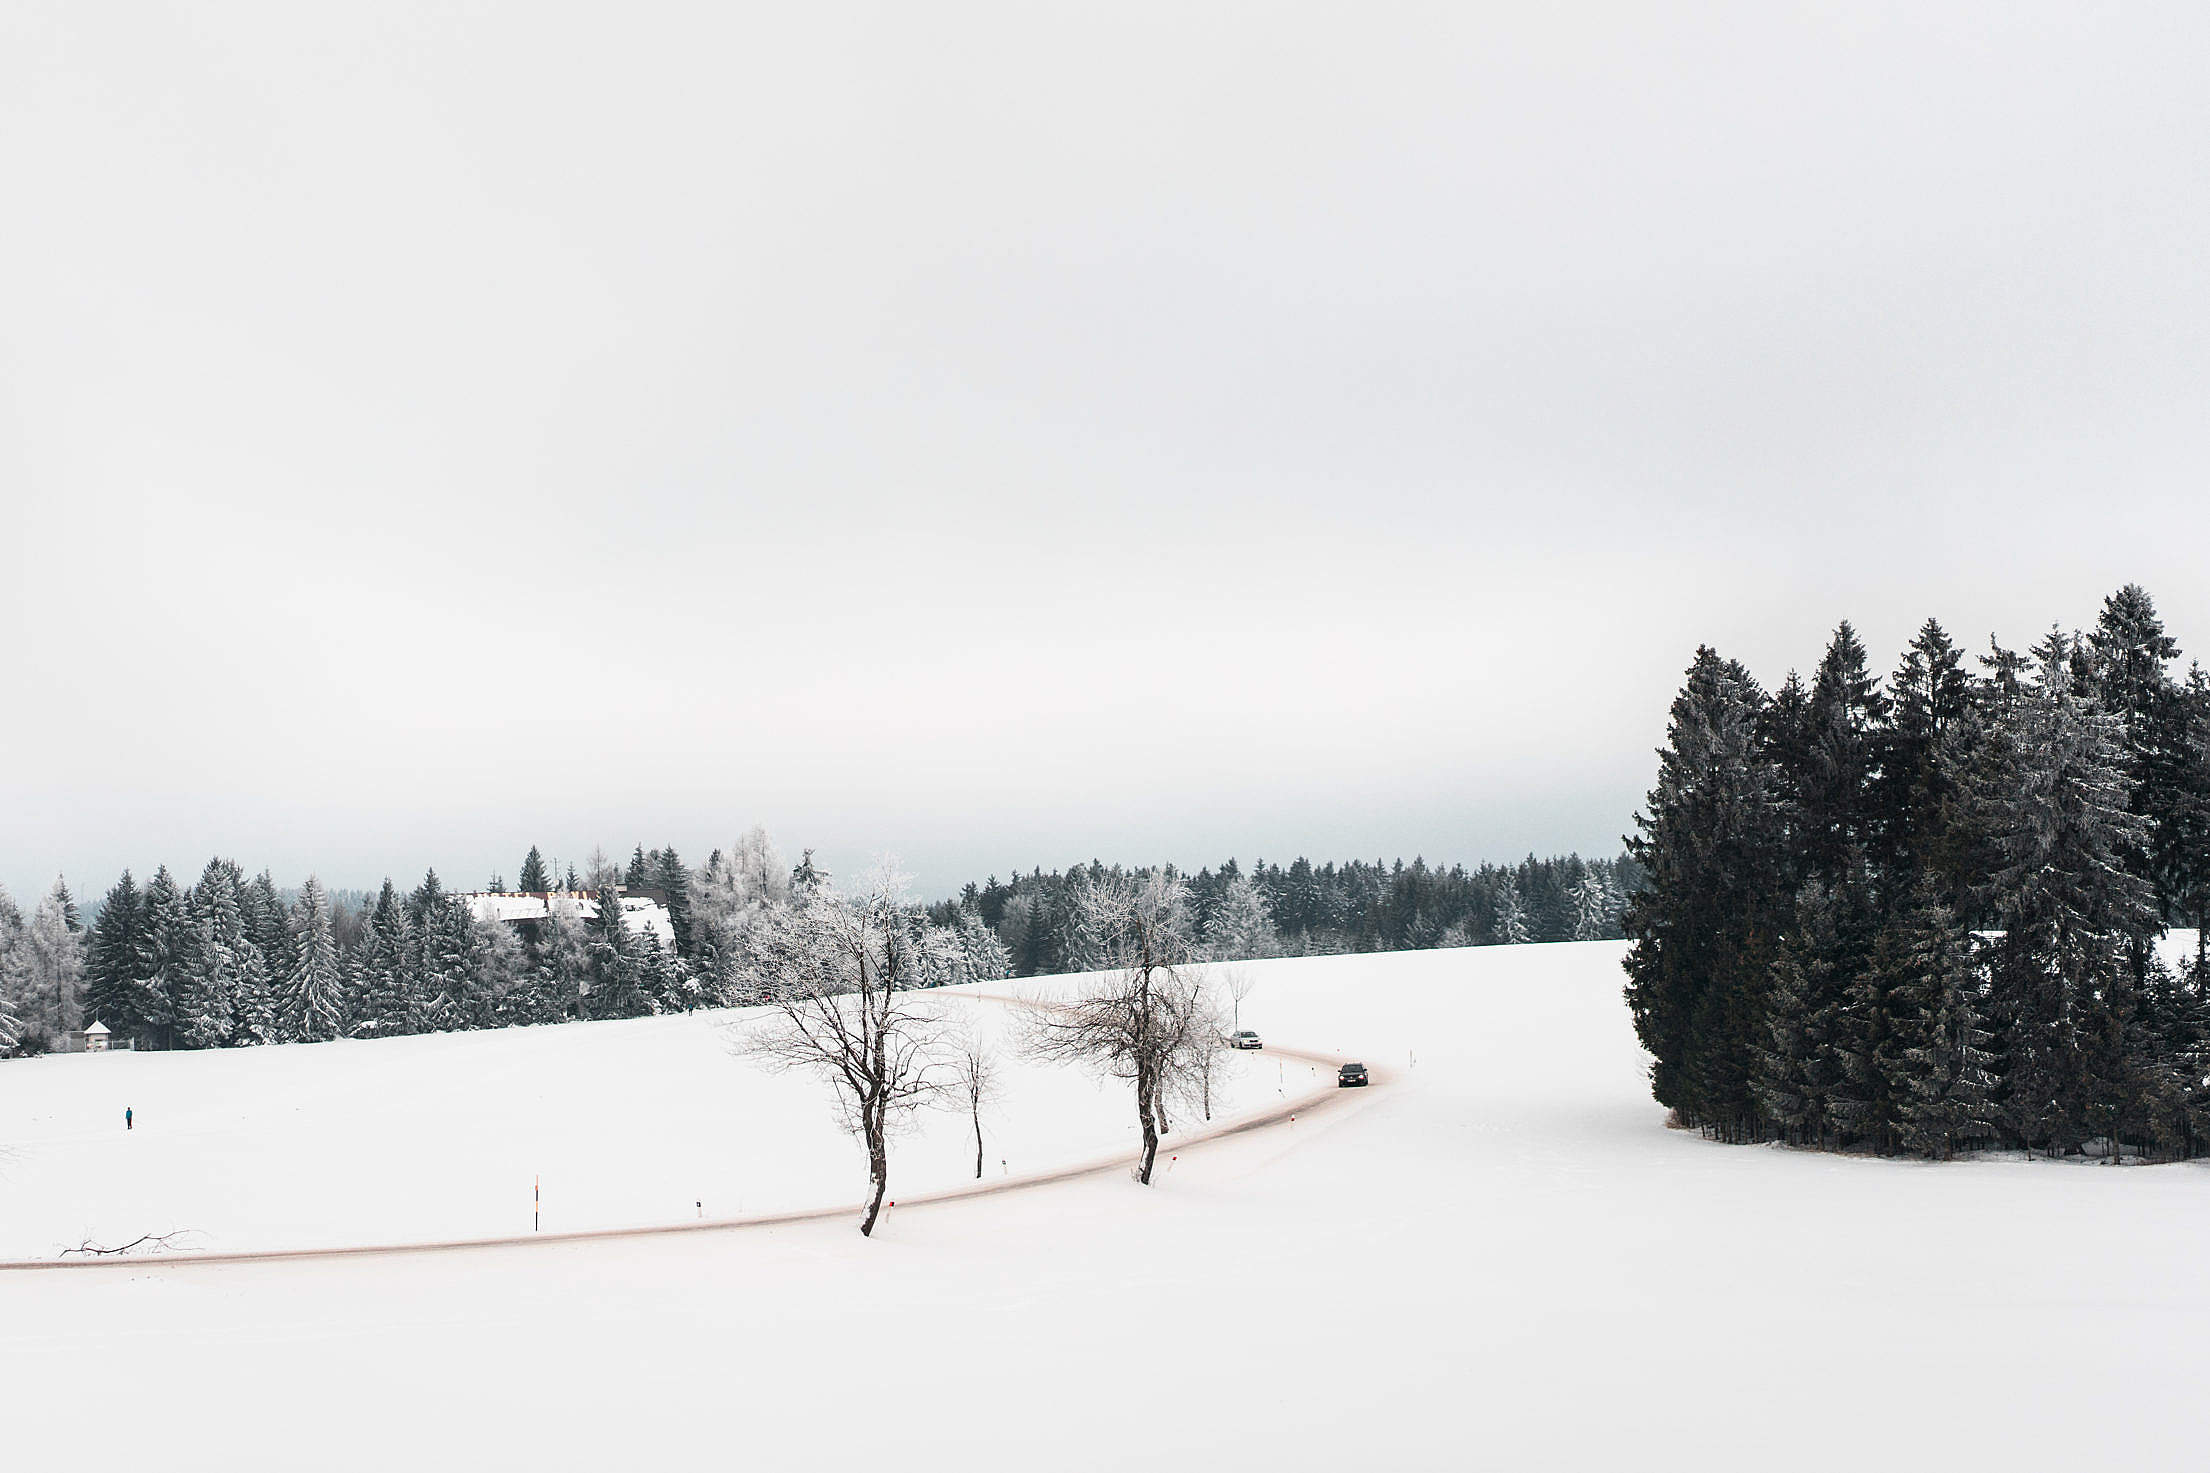 Road and Fields Covered with Snow Free Stock Photo